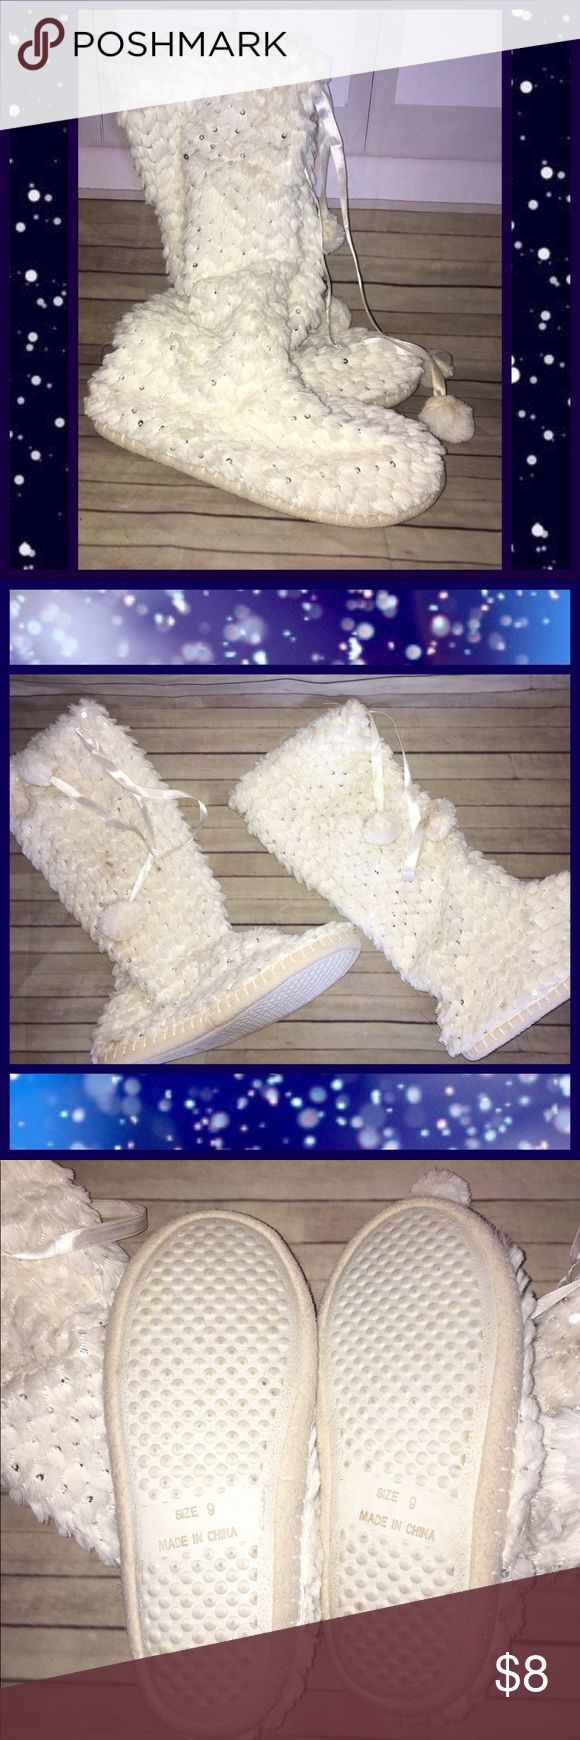 ☁️Super Soft Slippers with Sequins☁️ Winter white bootie slippers EUC size 9. Sparkly silver sequins make these warm slippers even more fun and festive. Drawstring top around the calf with Pom Pom details. Non skid sole on the bottom. Shoes Slippers